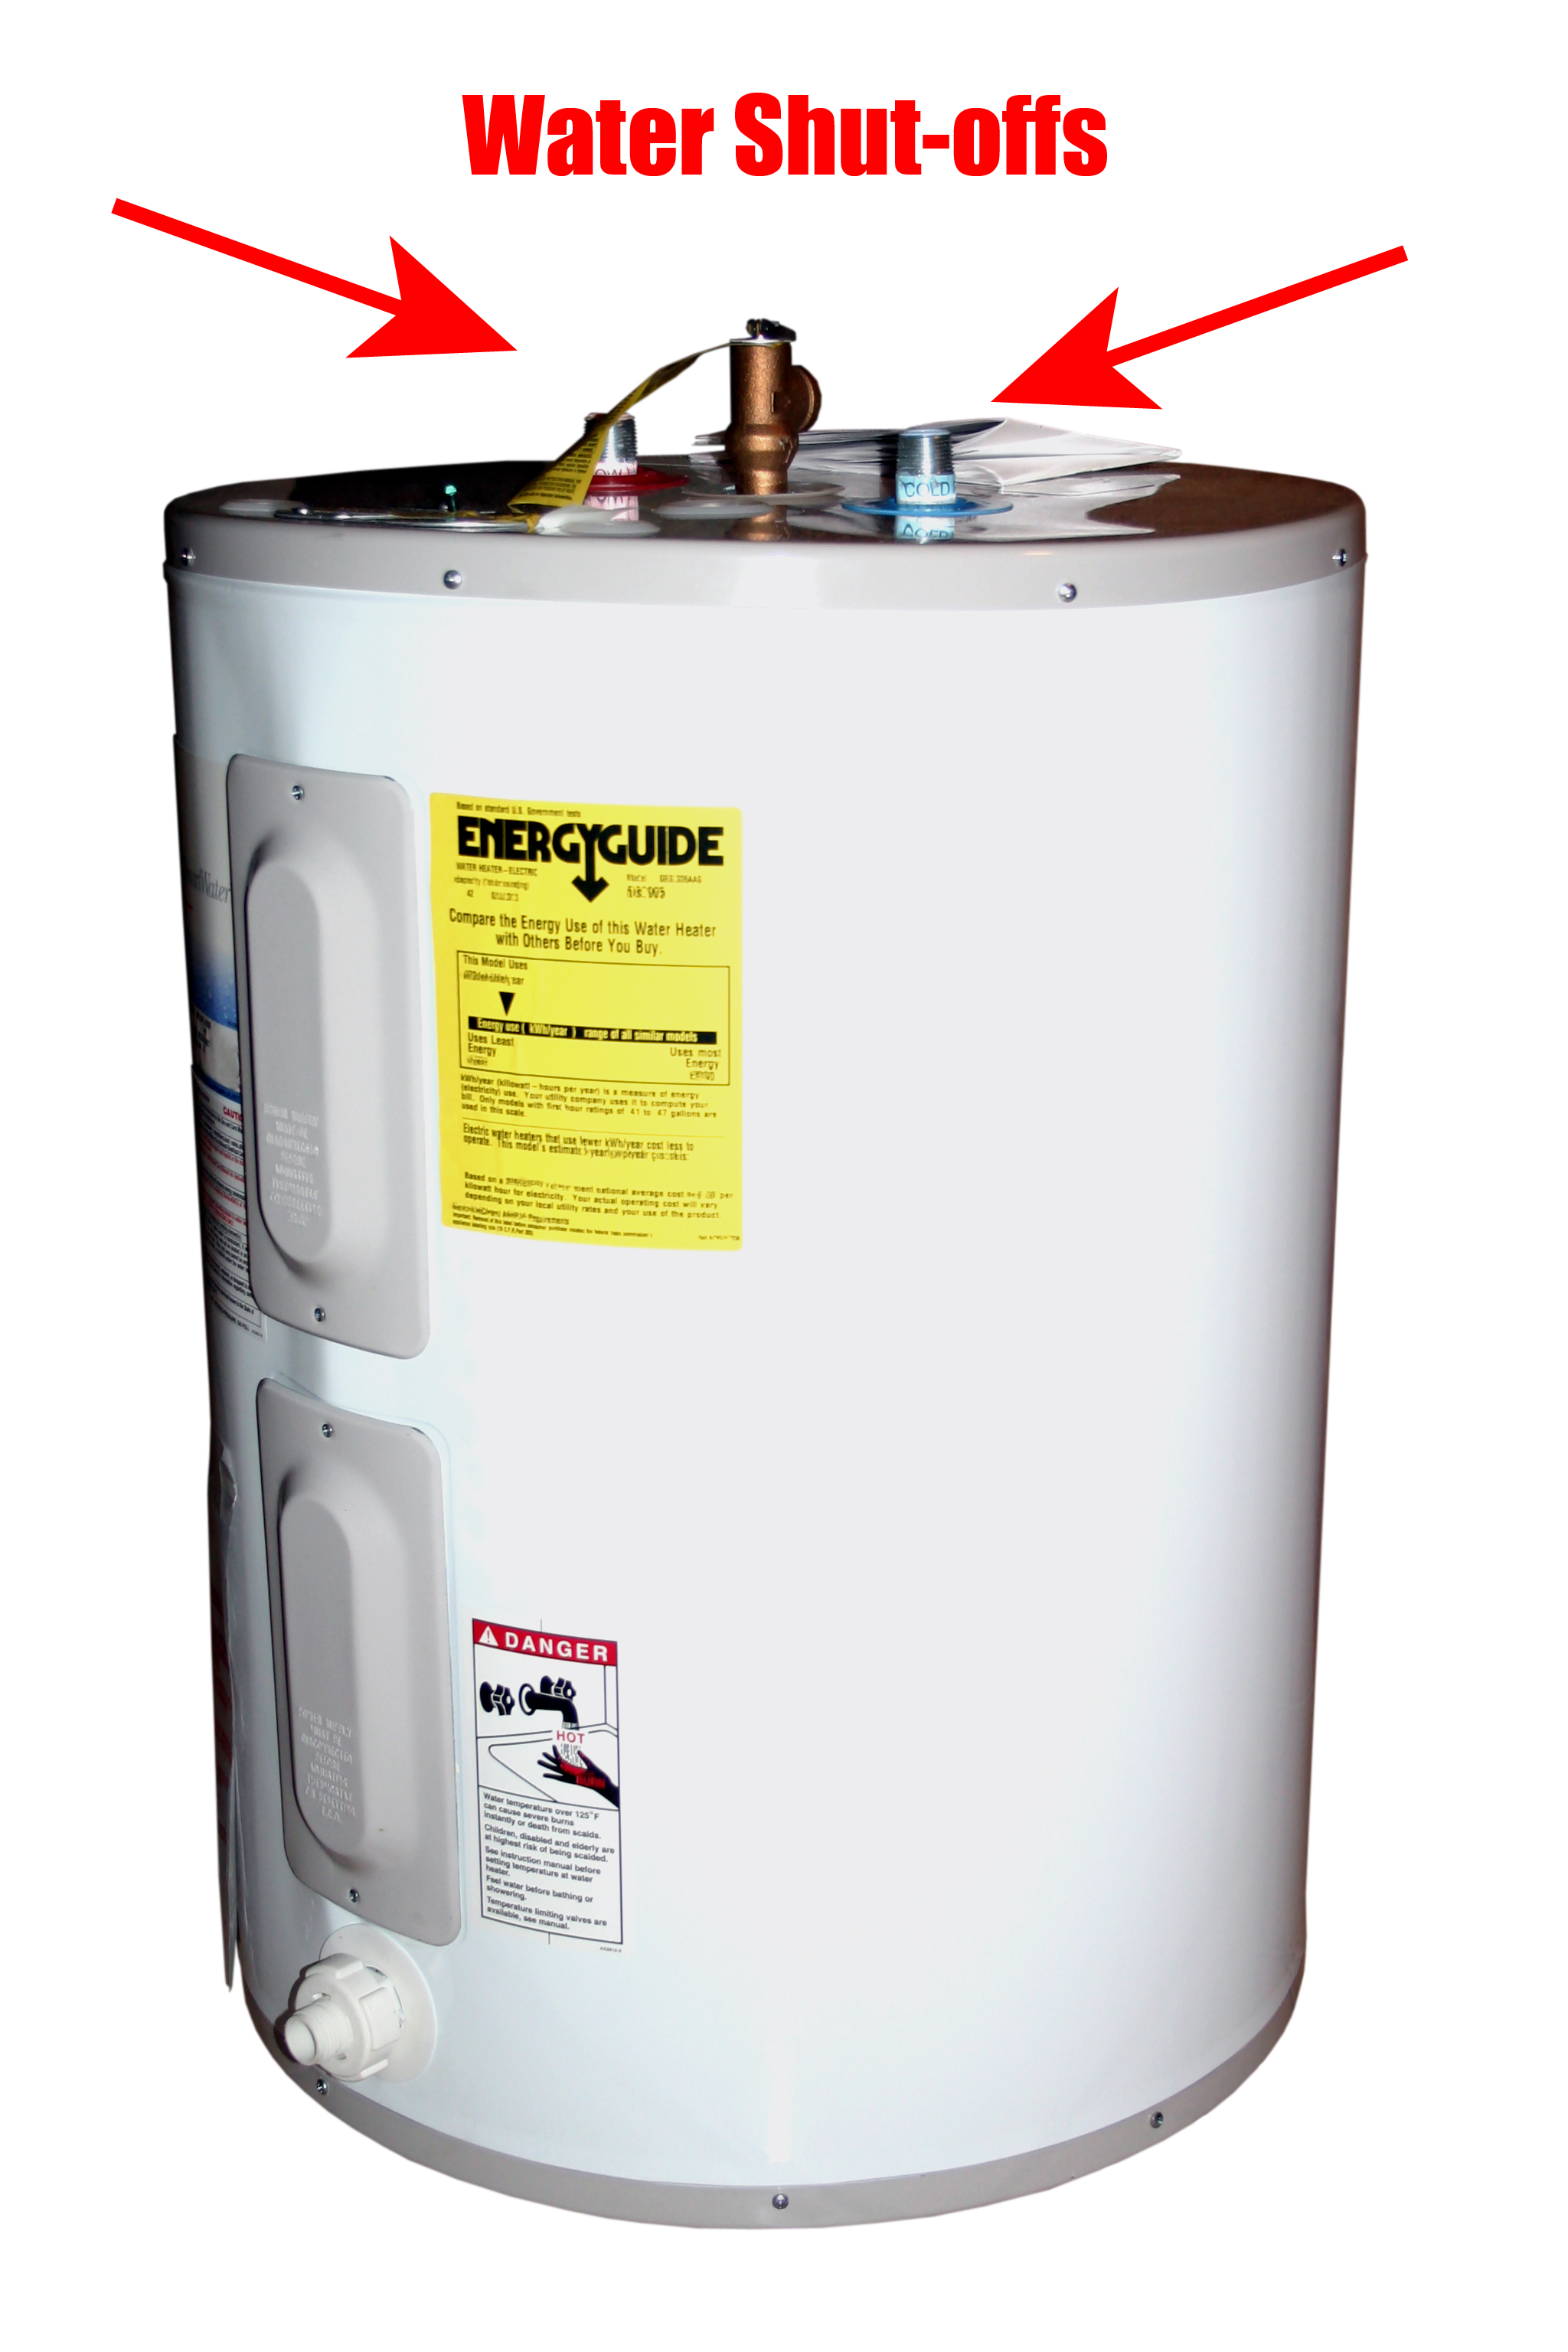 Emergency Water Heater Shutdown